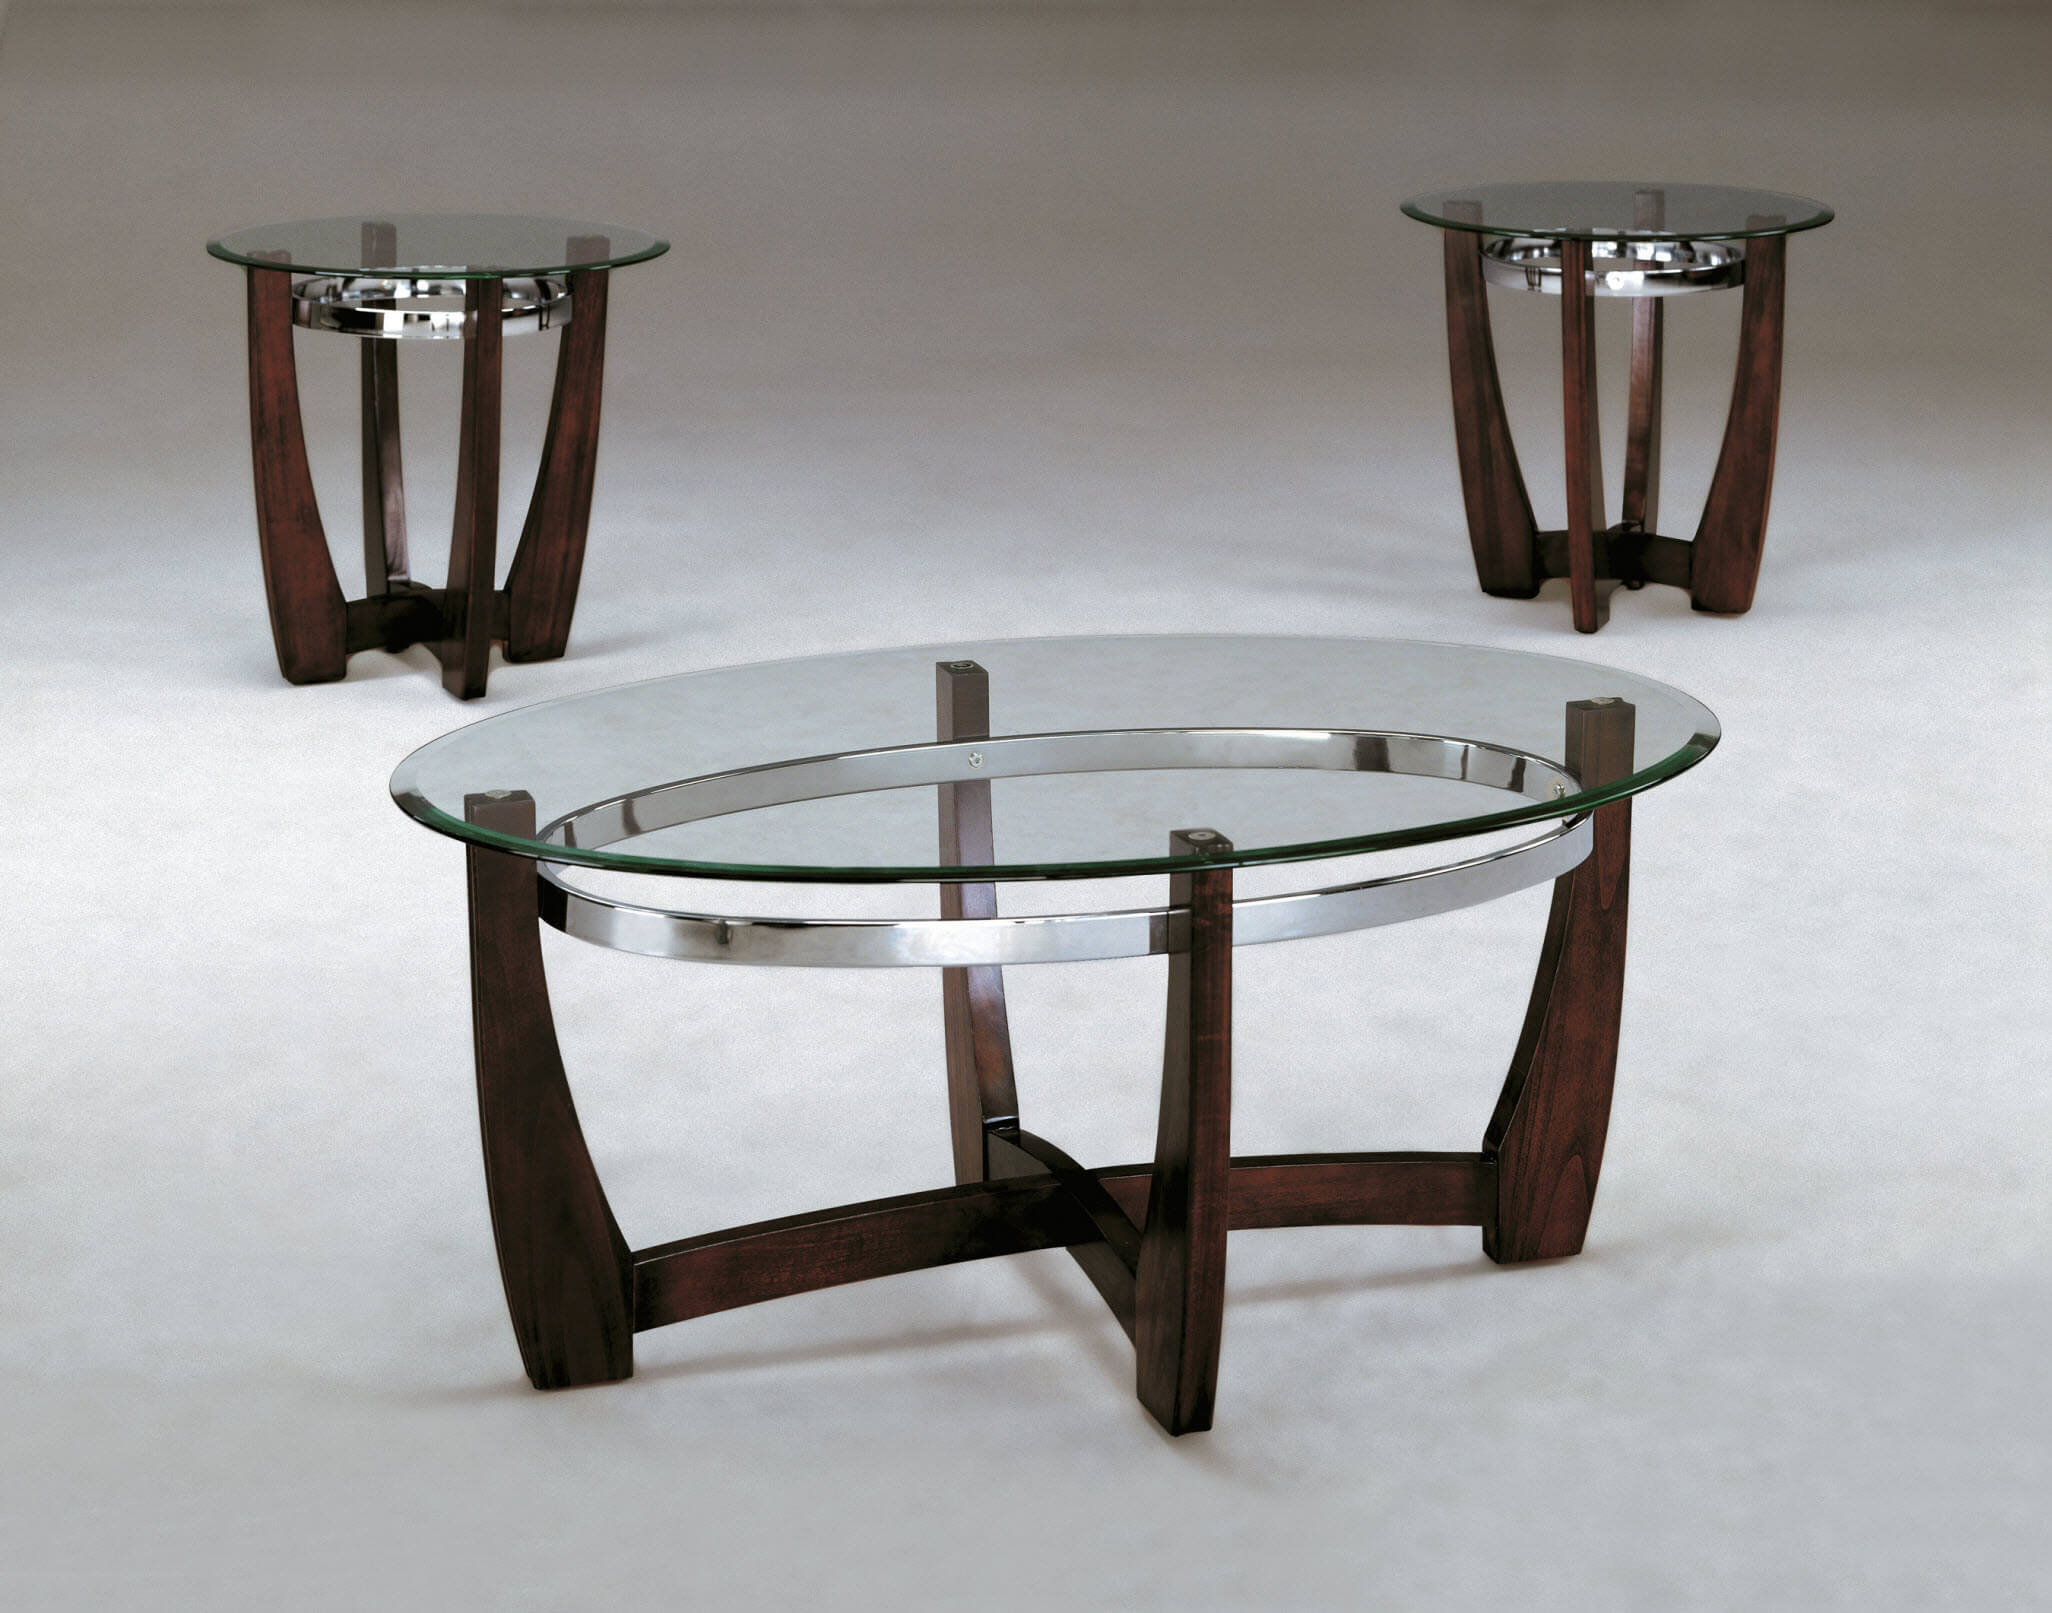 Mitchell Coffee And End Table Set Occasional Tables - 3 piece oval coffee table set